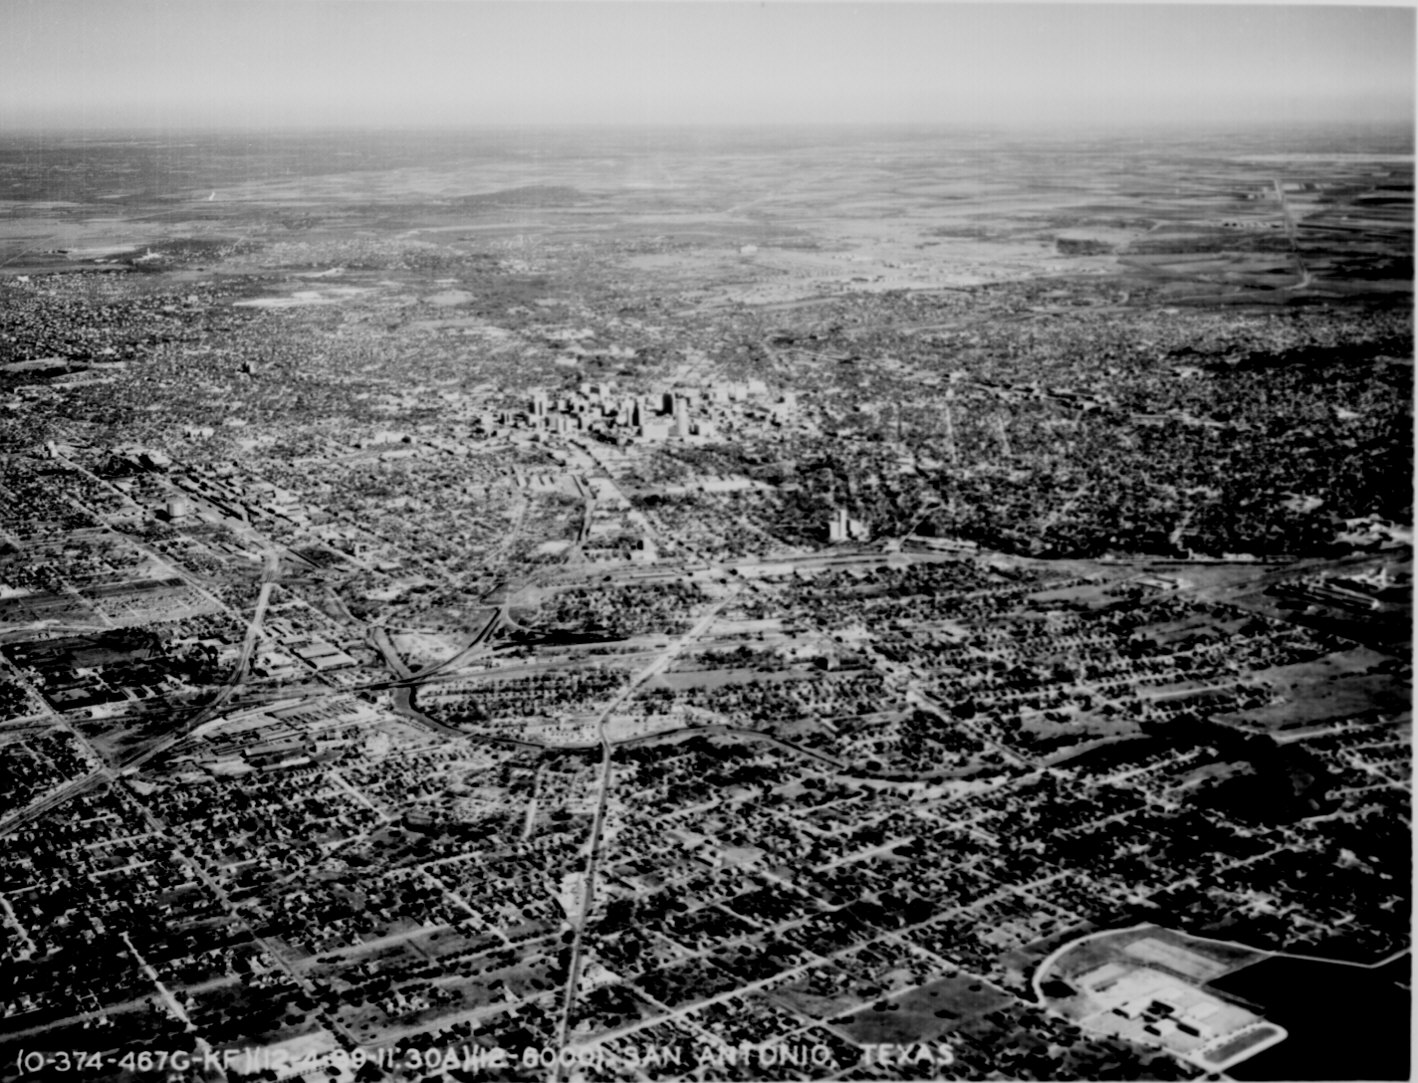 Aerial view of San Antonio. Tex., and the surrounding plains, Dec. 1939. Photo from the National Archives. http://www.archives.gov/research/american-cities/